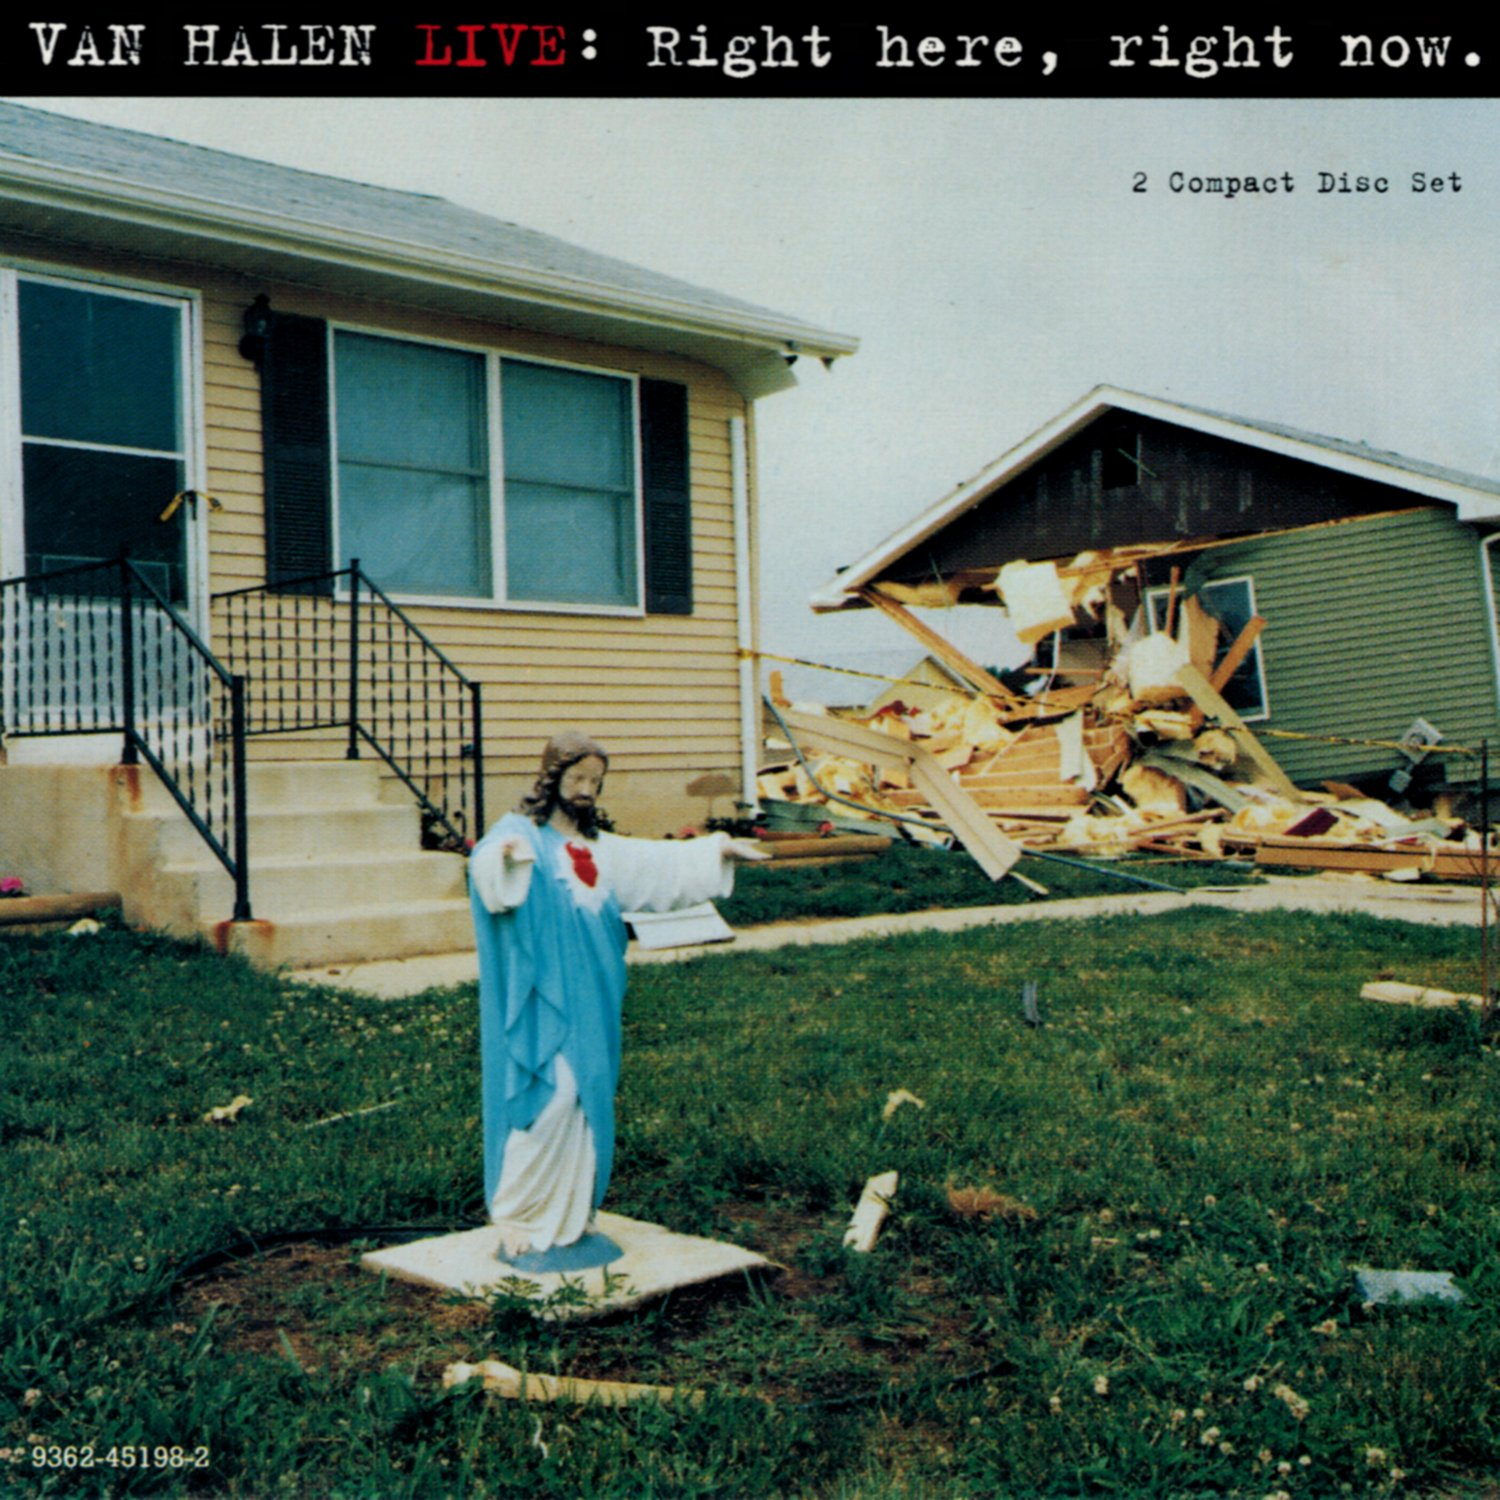 VAN HALEN Live: Right Here Right Now BANNER Huge 4X4 Ft Fabric Poster Tapestry Flag album cover art